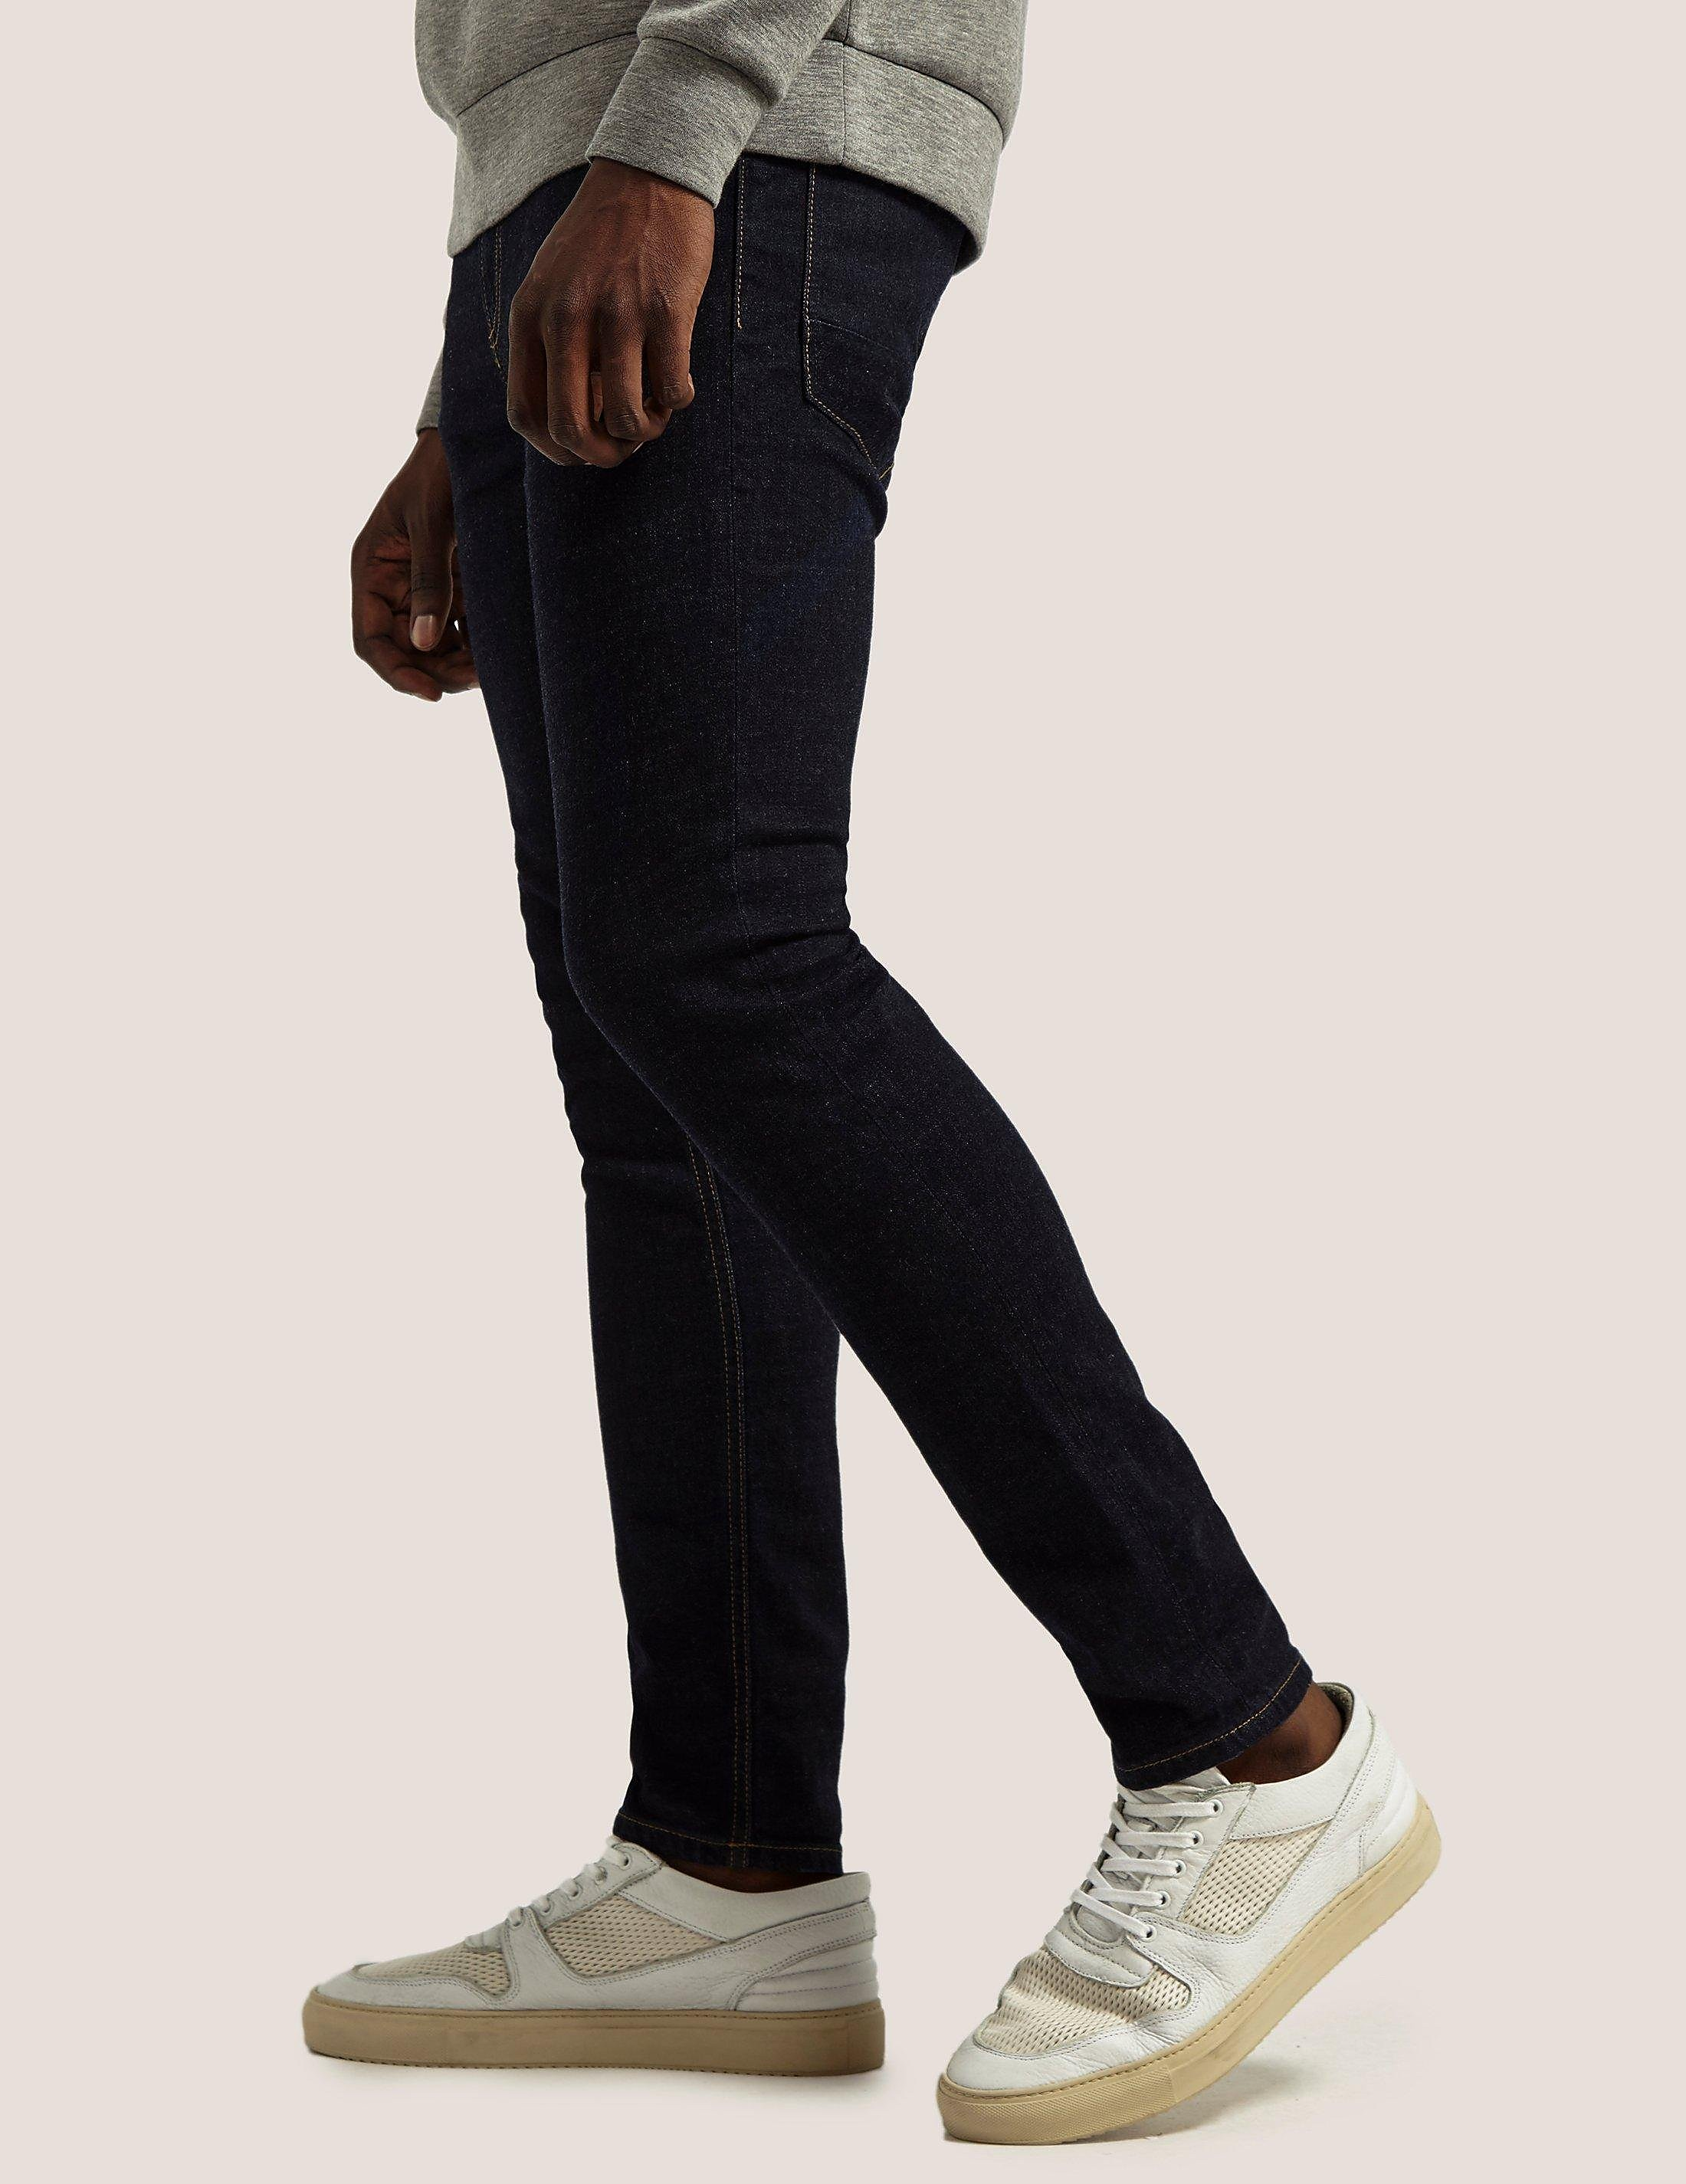 Scotch & Soda Skim Touchdown Jeans